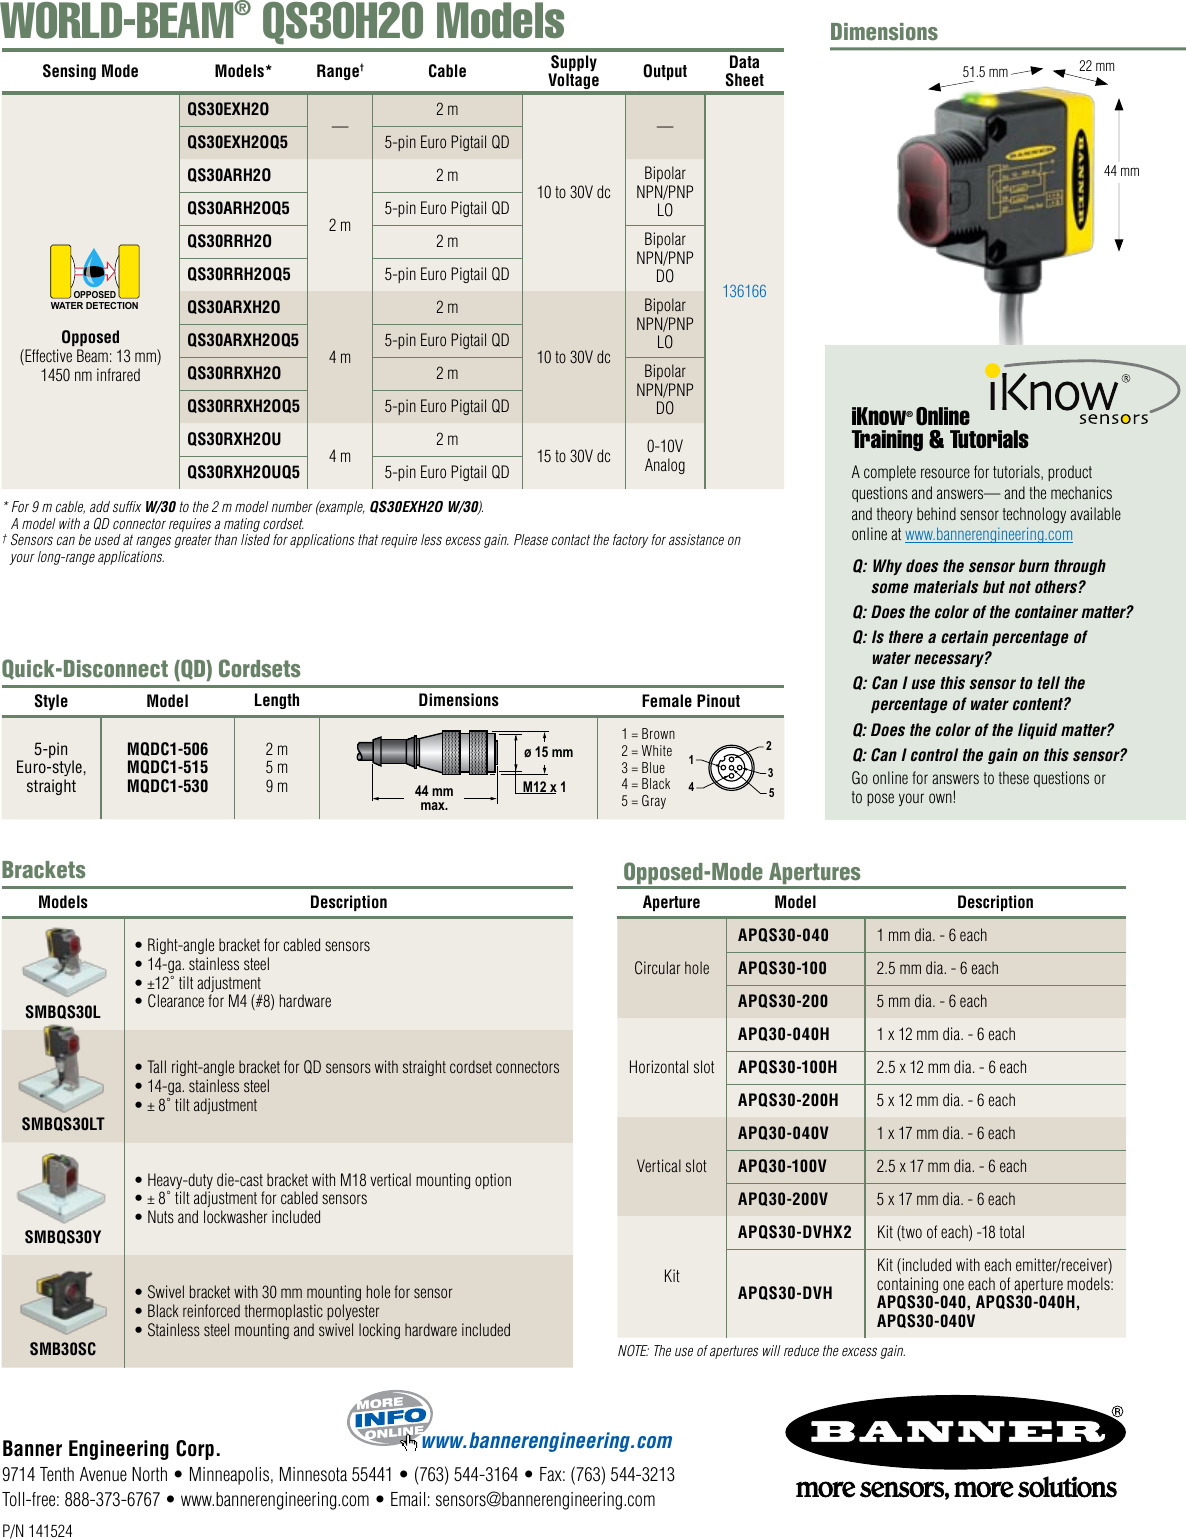 Banner Qs30H20 Users Manual WORLD BEAM QS30H2O Opposed Mode